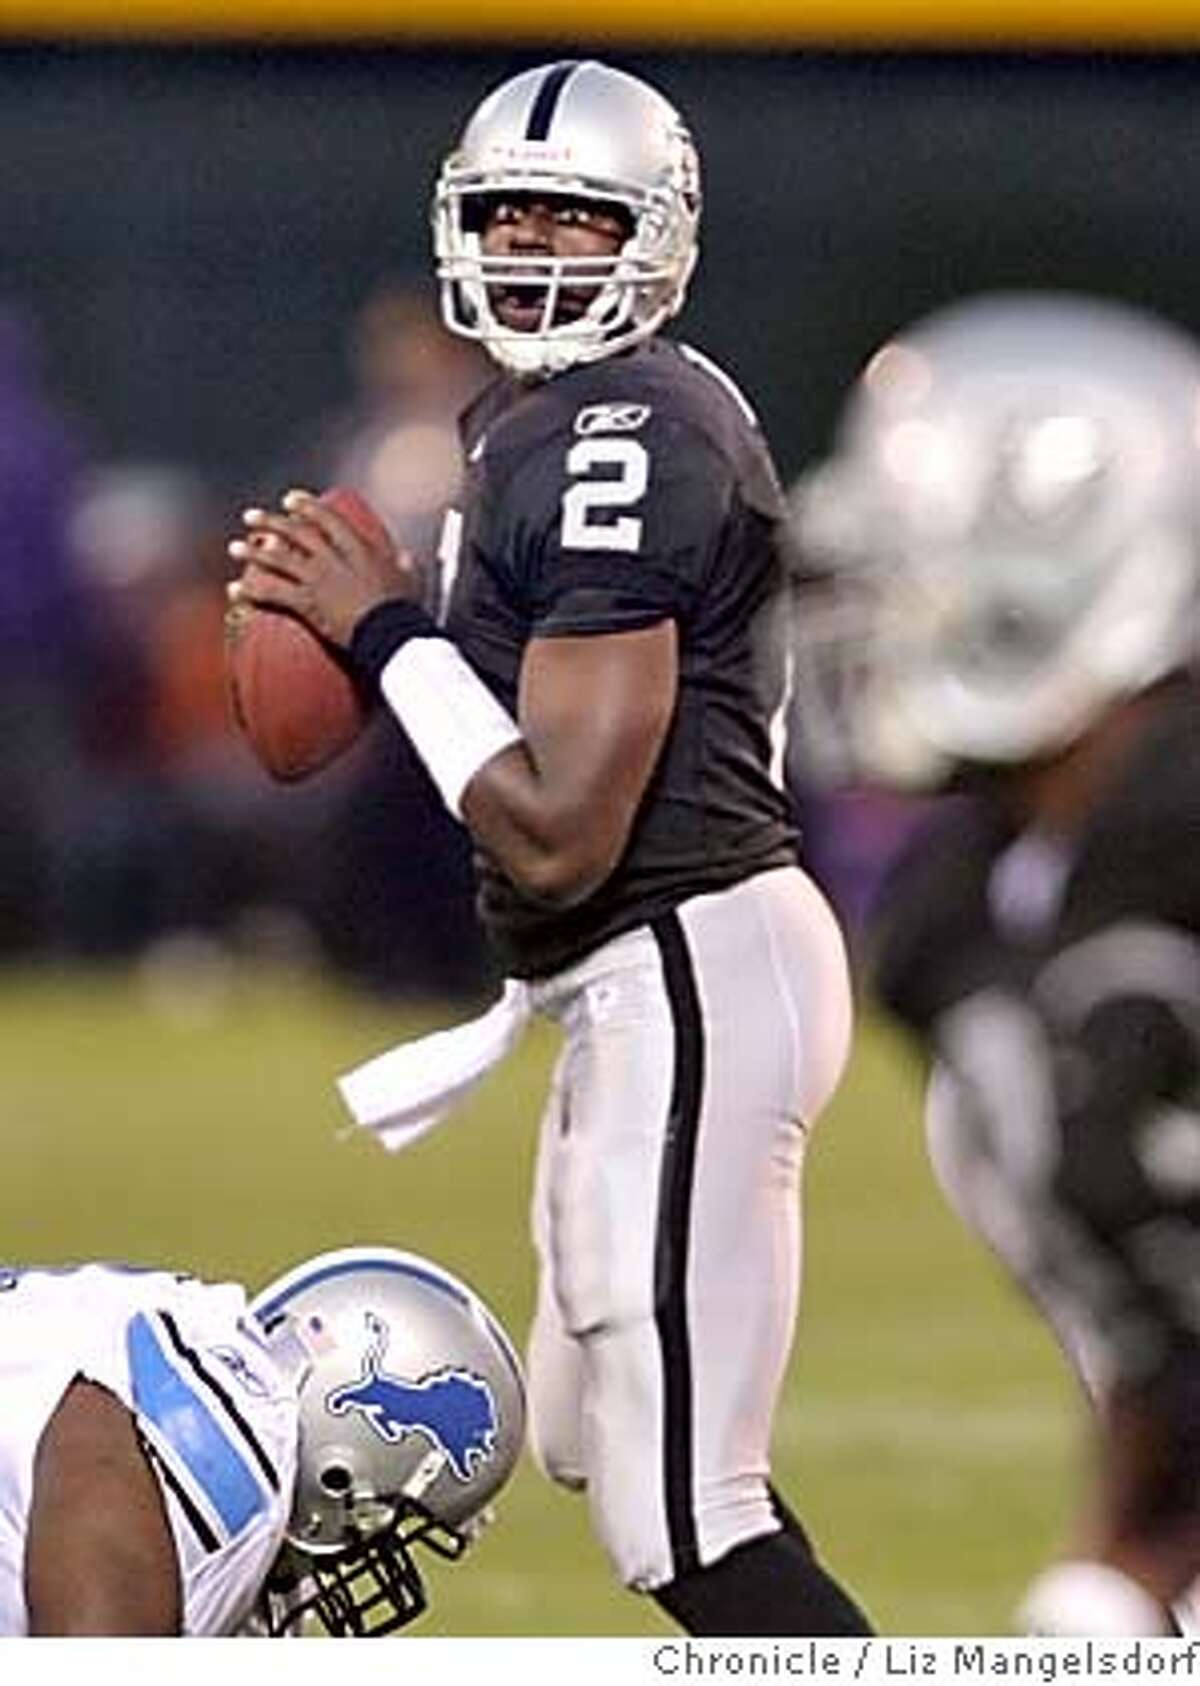 raiders26__262_lm.JPG QB Aaron Brooks during the first half. Oakland Raiders V. the Detroit Lions at the McAfee Coliseum on Aug. 25, 2006 Liz Mangelsdorf /The Chronicle MANDATORY CREDIT FOR PHOTOG AND SF CHRONICLE/ -MAGS OUT